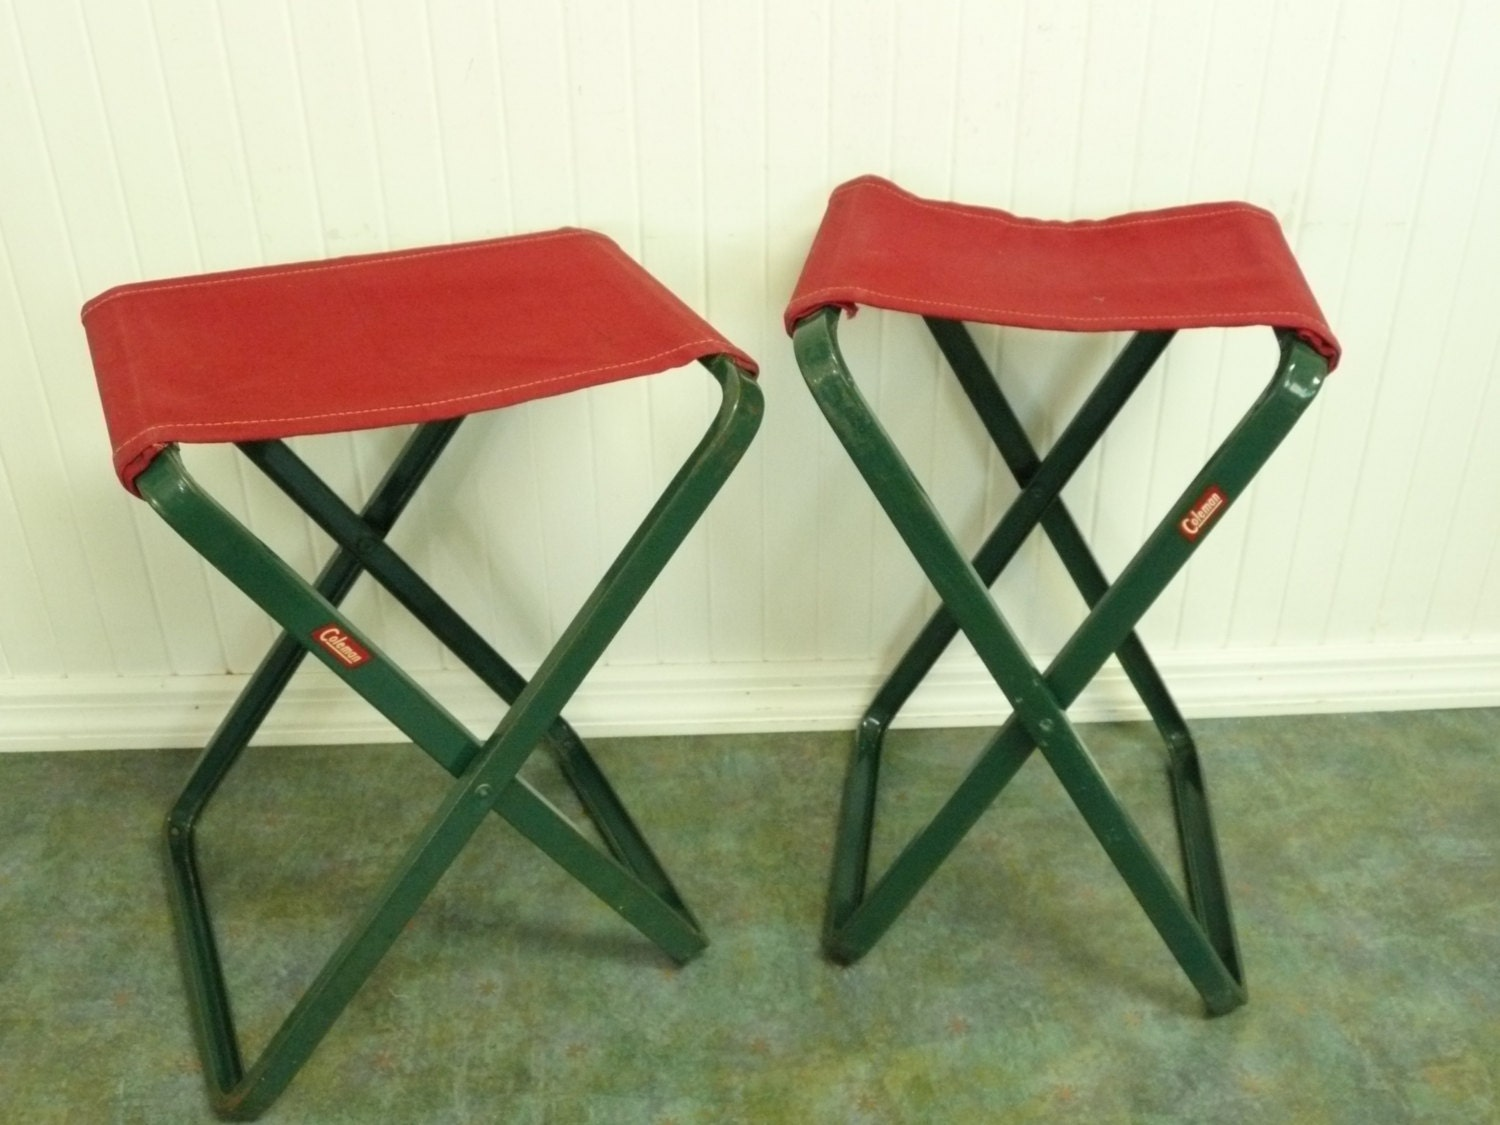 Two Vintage Camp Chairs Coleman Camping Fishing Stools Set